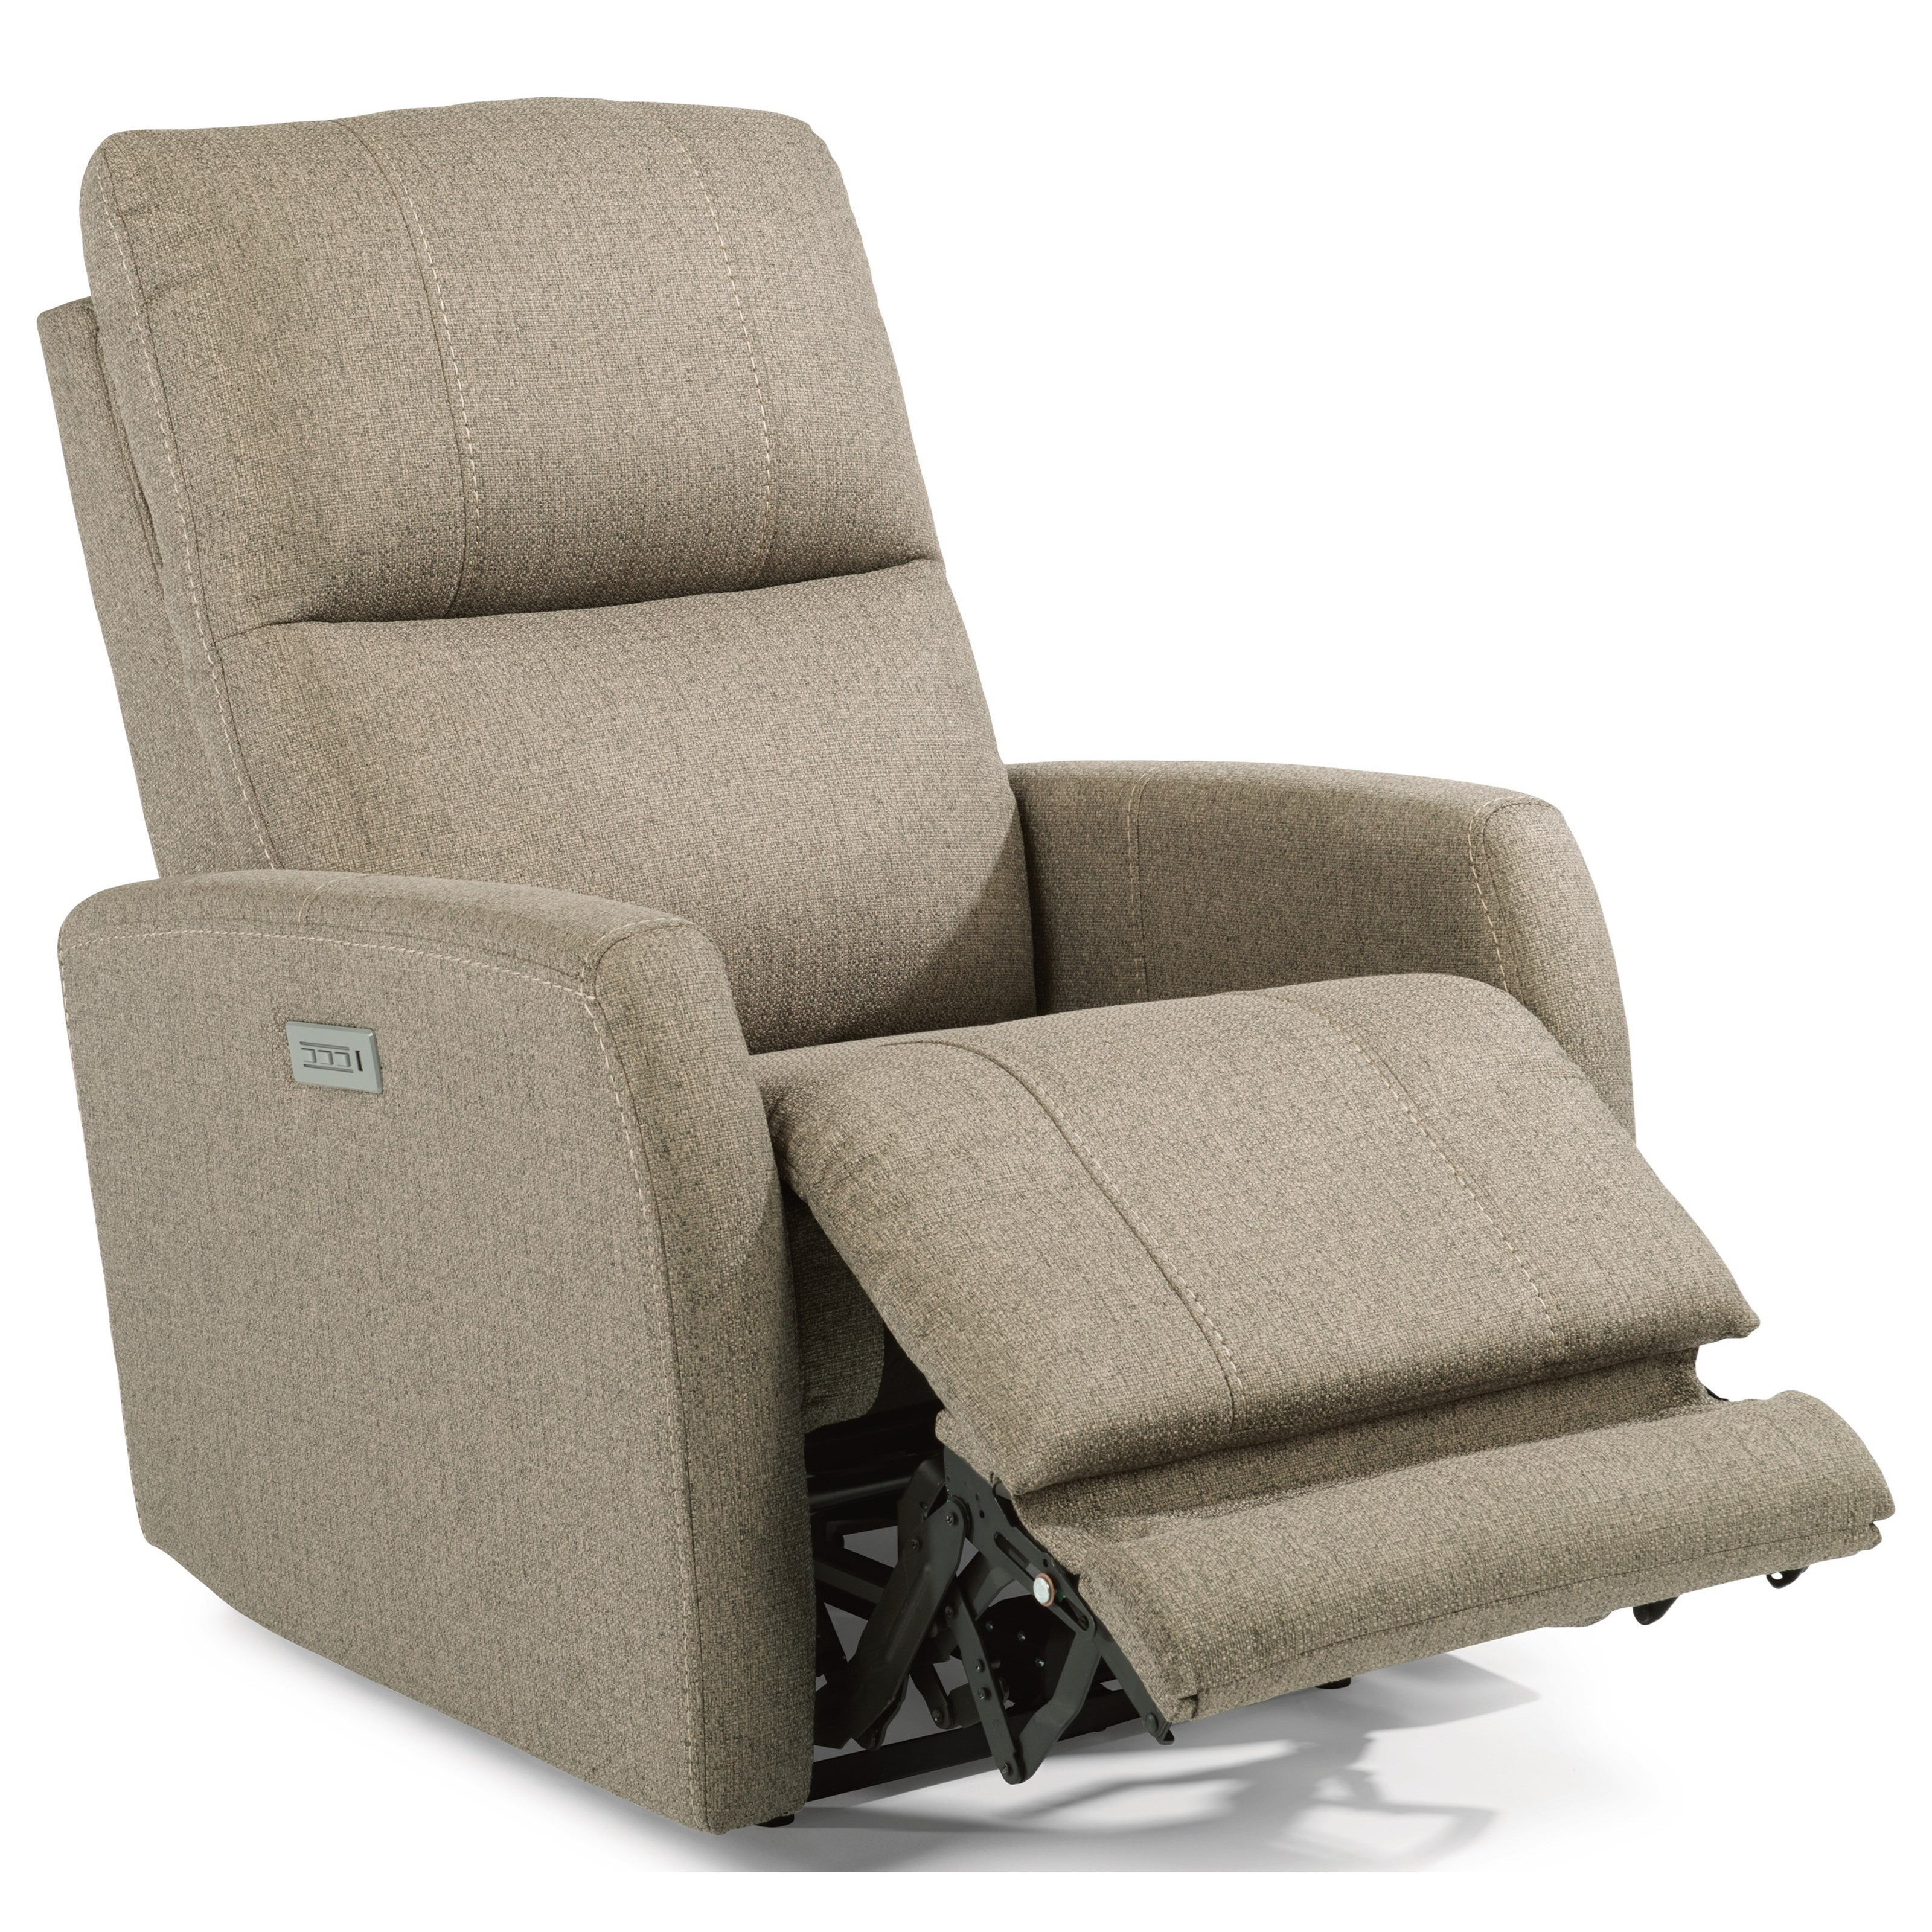 Latitudes - Sadie Power Recliner by Flexsteel at Walker's Furniture